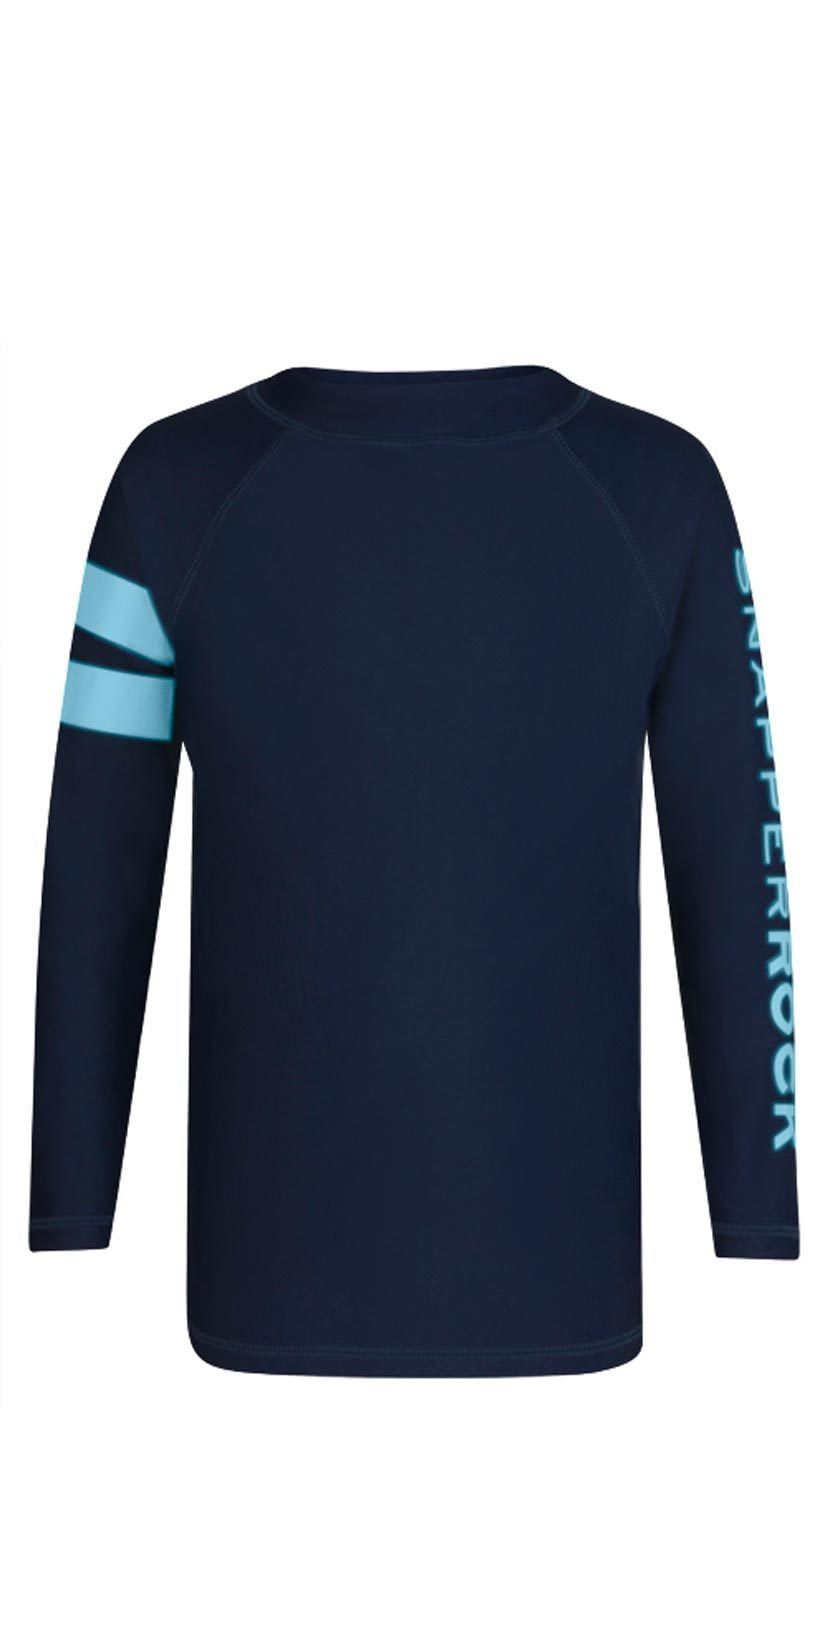 Snapperrock Boy's Arm Band Long Sleeve Rashguard Top in Navy B20053L: